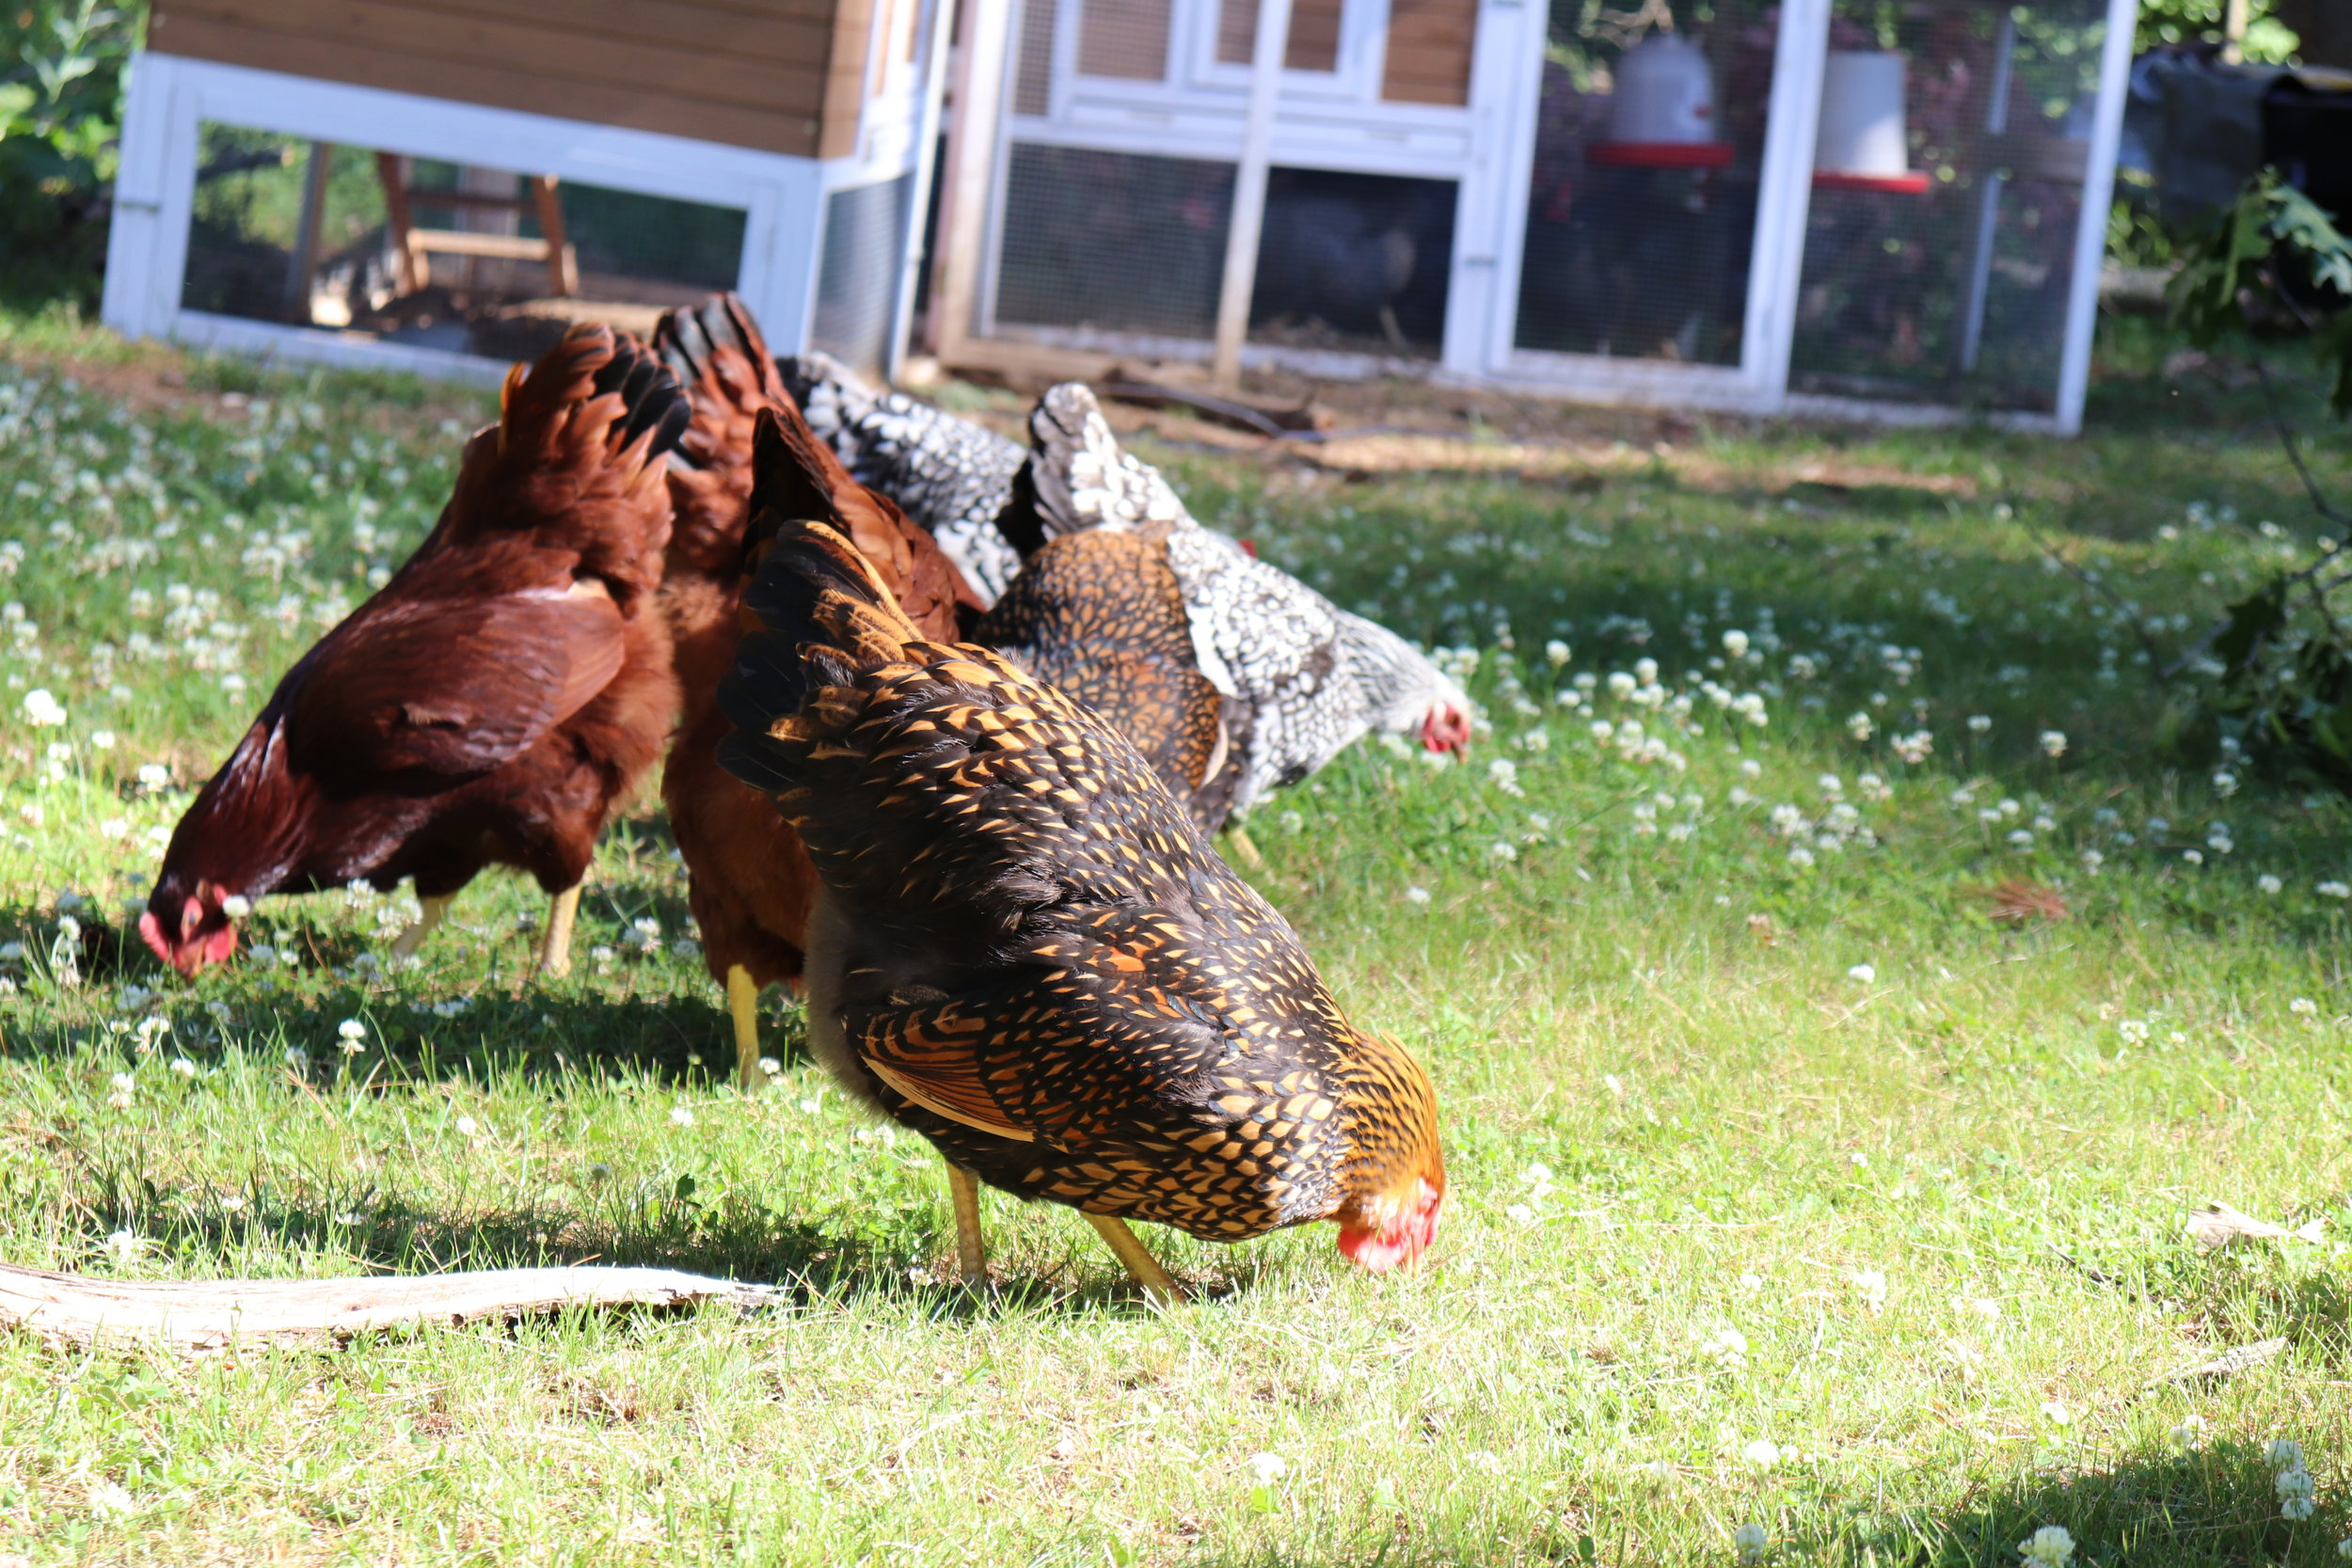 The Hens - Our 10 hens will typically run to the edge of their pen to greet our guests. They are particularly prolific in the warm months and, if you ask kindly, we may send you home with some farm fresh eggs!